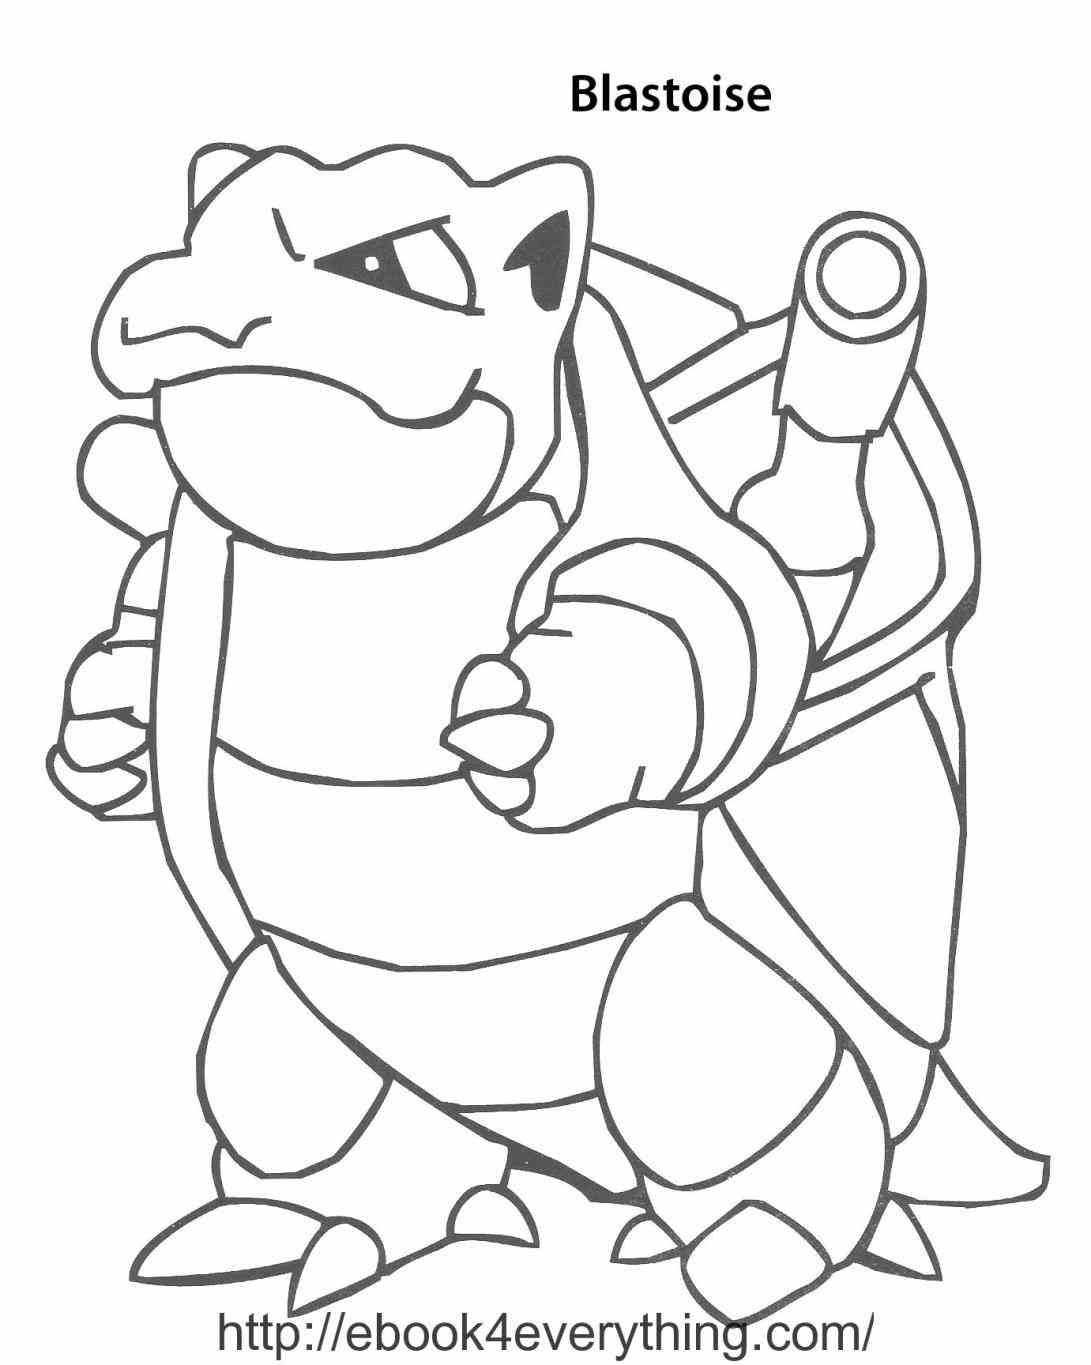 1091x1365 Secrets Blastoise Coloring Page Pokemon Pages